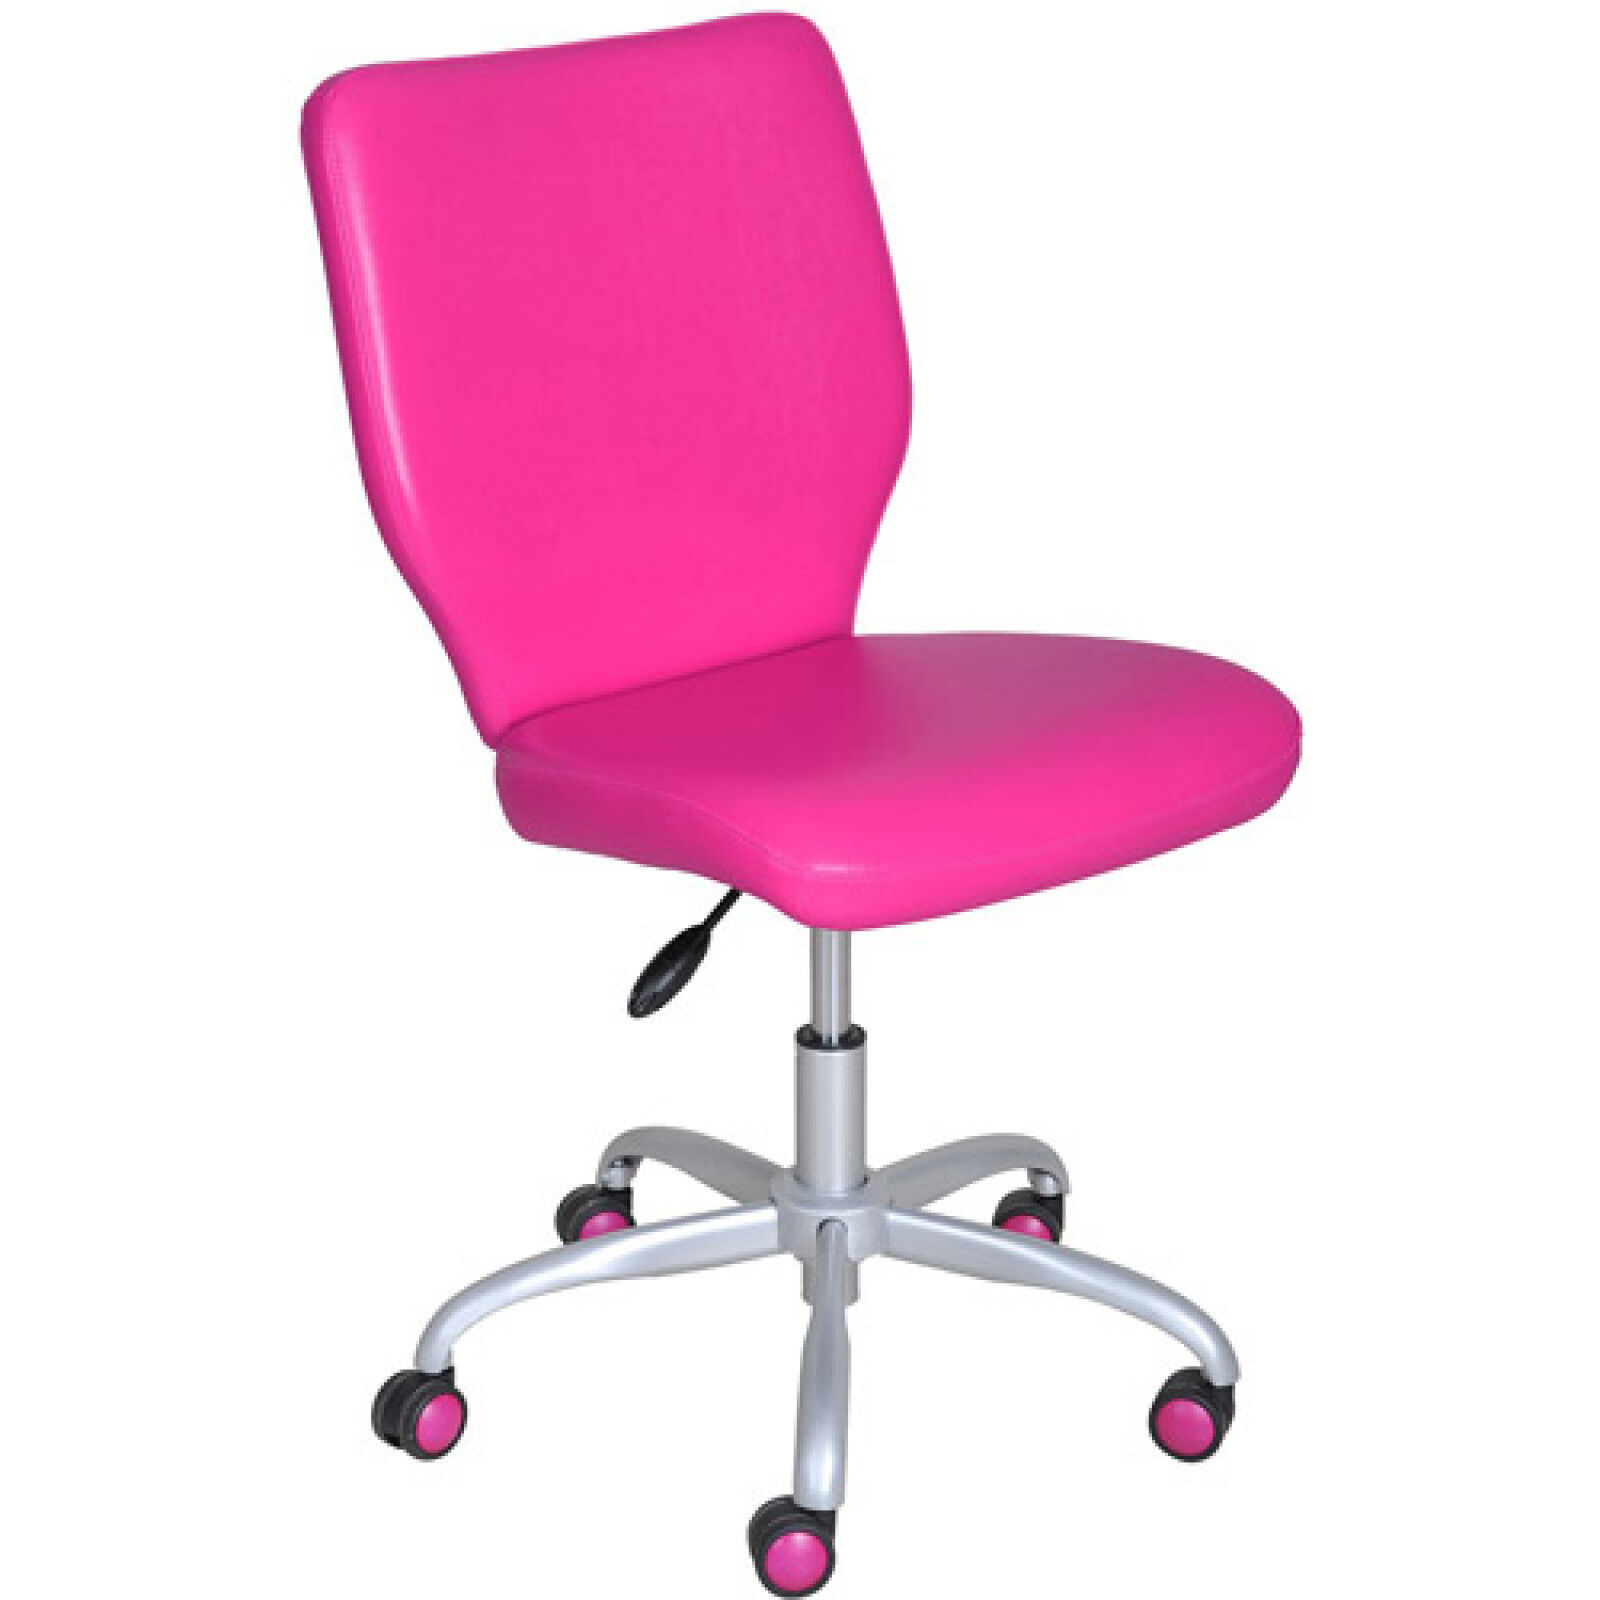 New Pink Girl's Office Chair Adjustable Furniture Computer D